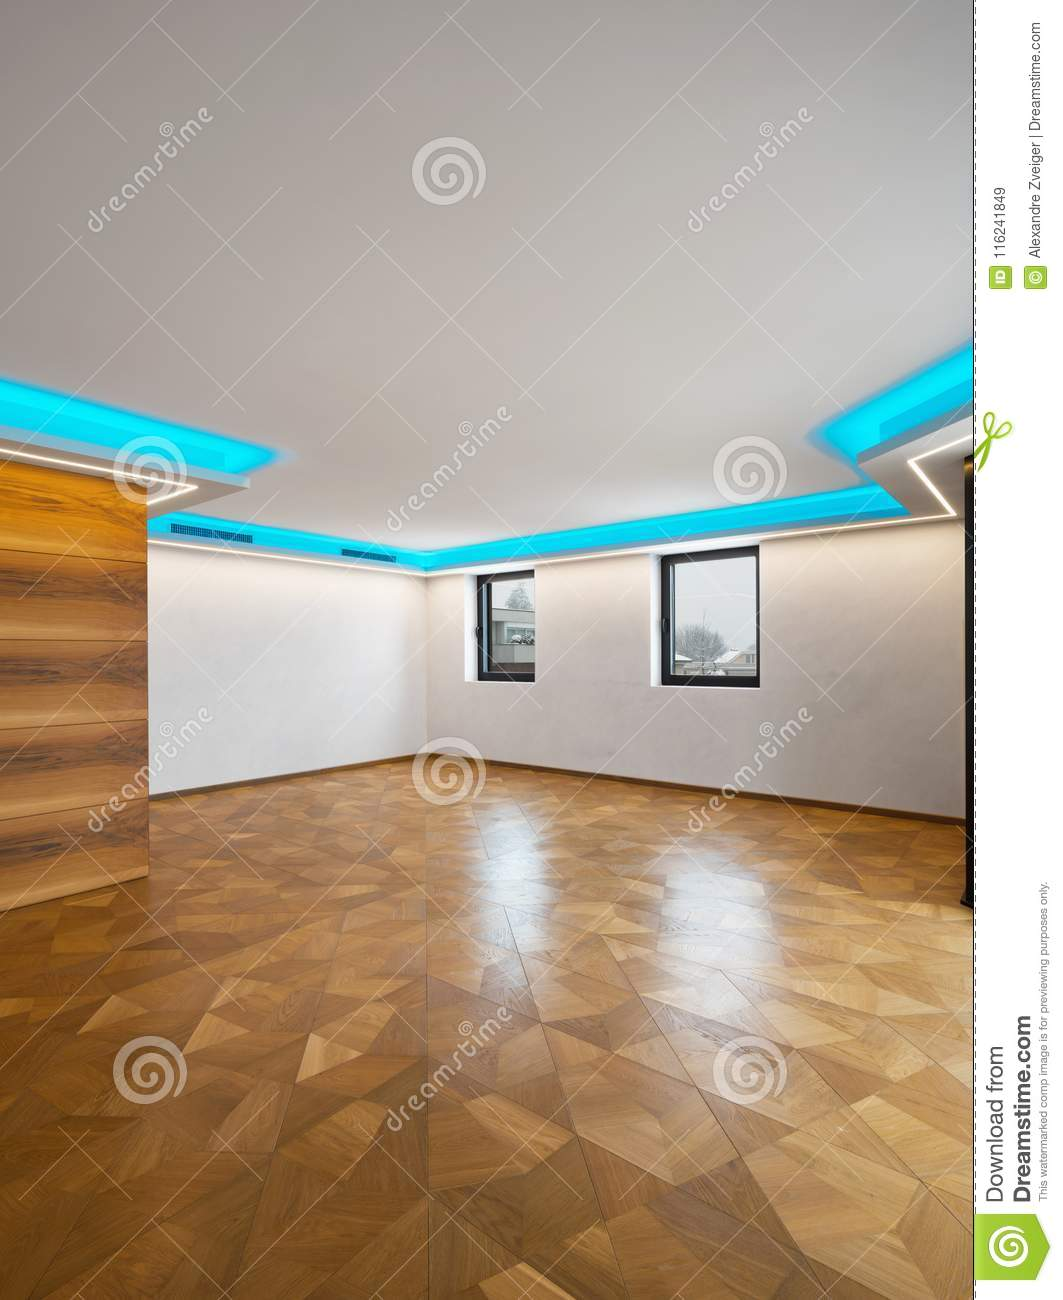 Living Room With Led Lights Stock Image Image Of Snow Wooden